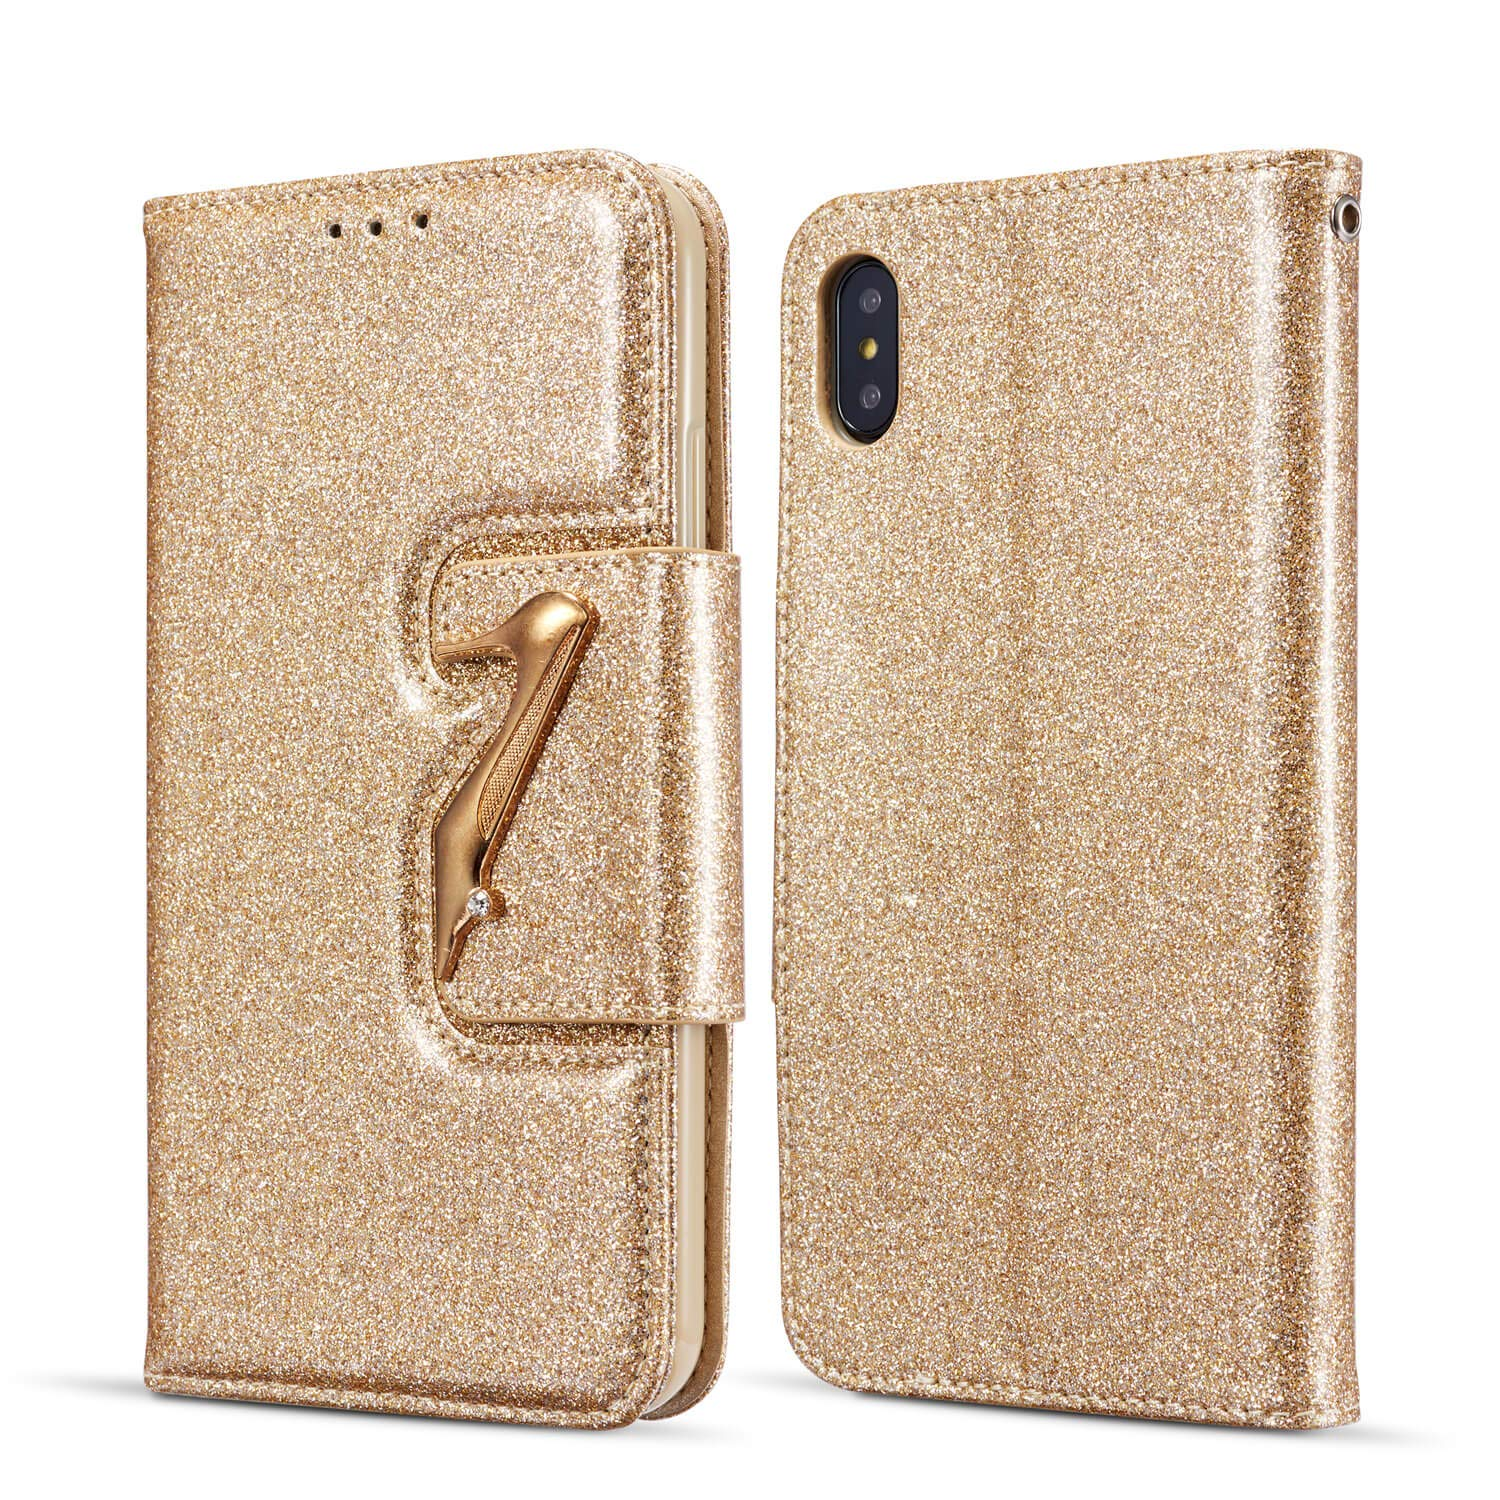 DEFBSC iPhone X iPhone Xs Wallet Case with Kickstand Card Holder,Bling Glitter PU Leather Folio Flip Case for iPhone X/iPhone Xs 5.8 inch,Gold